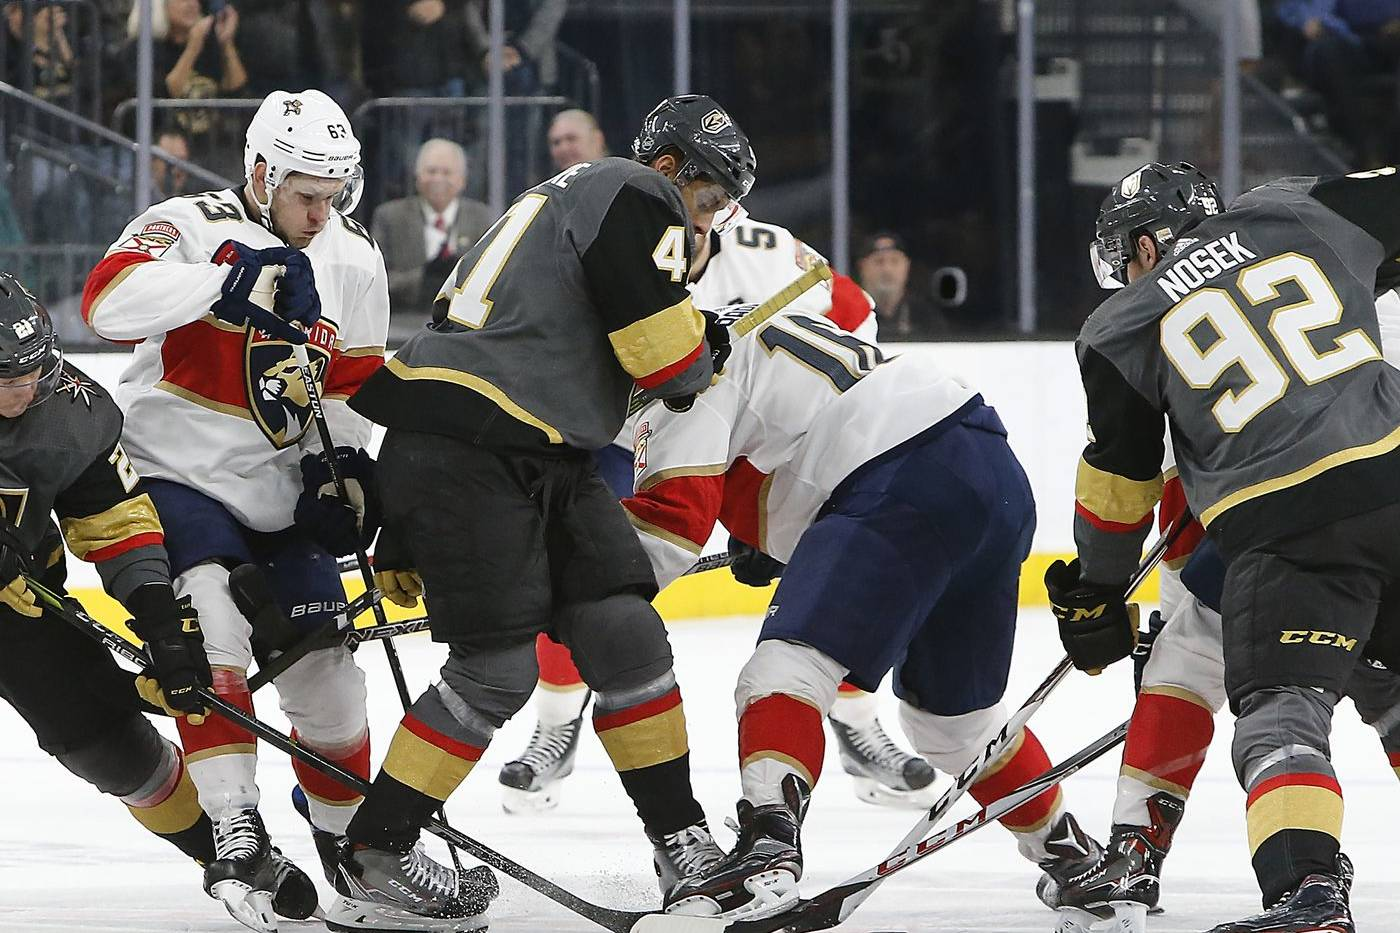 Golden Knights vs Panthers